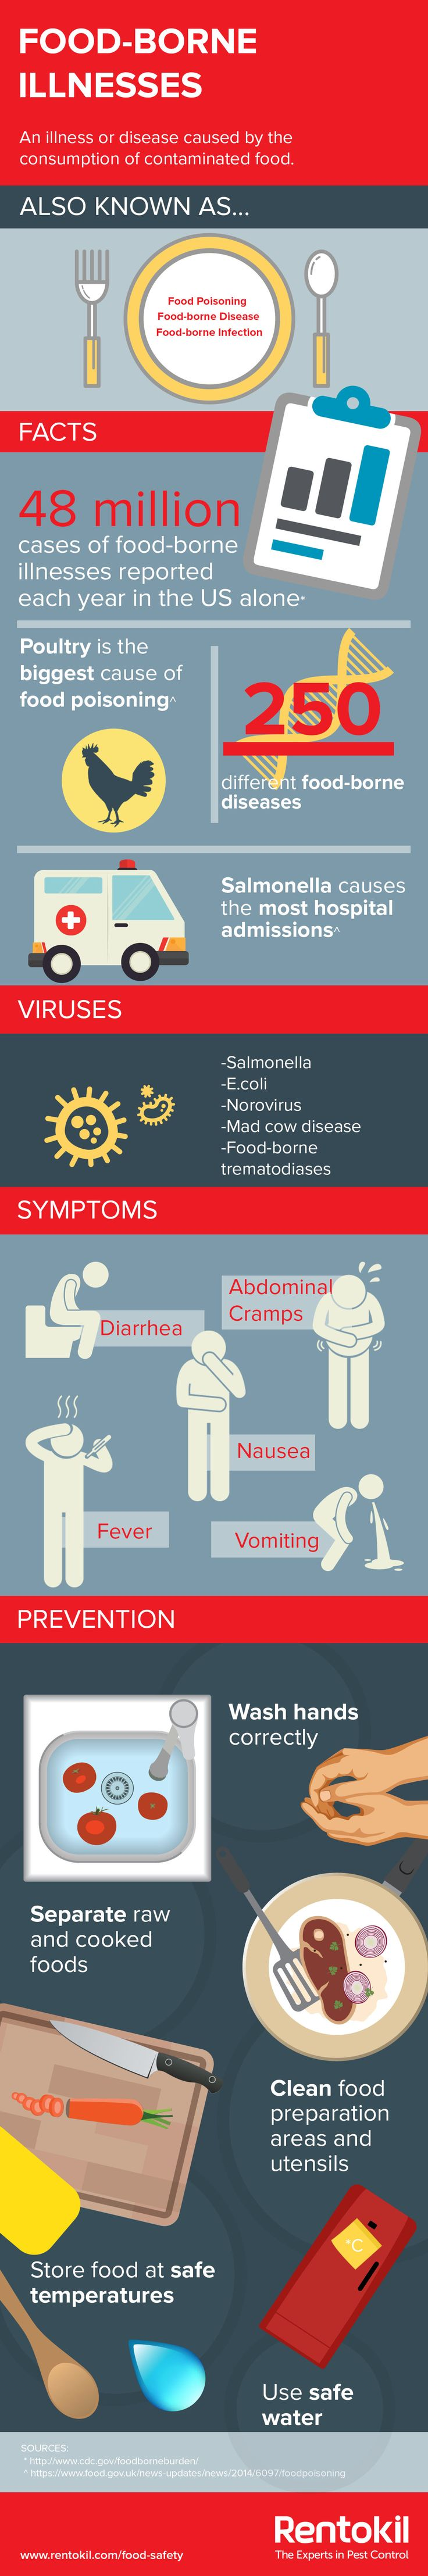 Find out about food-borne illnesses such as salmonella, their symptoms, and how to prevent them. #FoodSafety #FoodHygiene